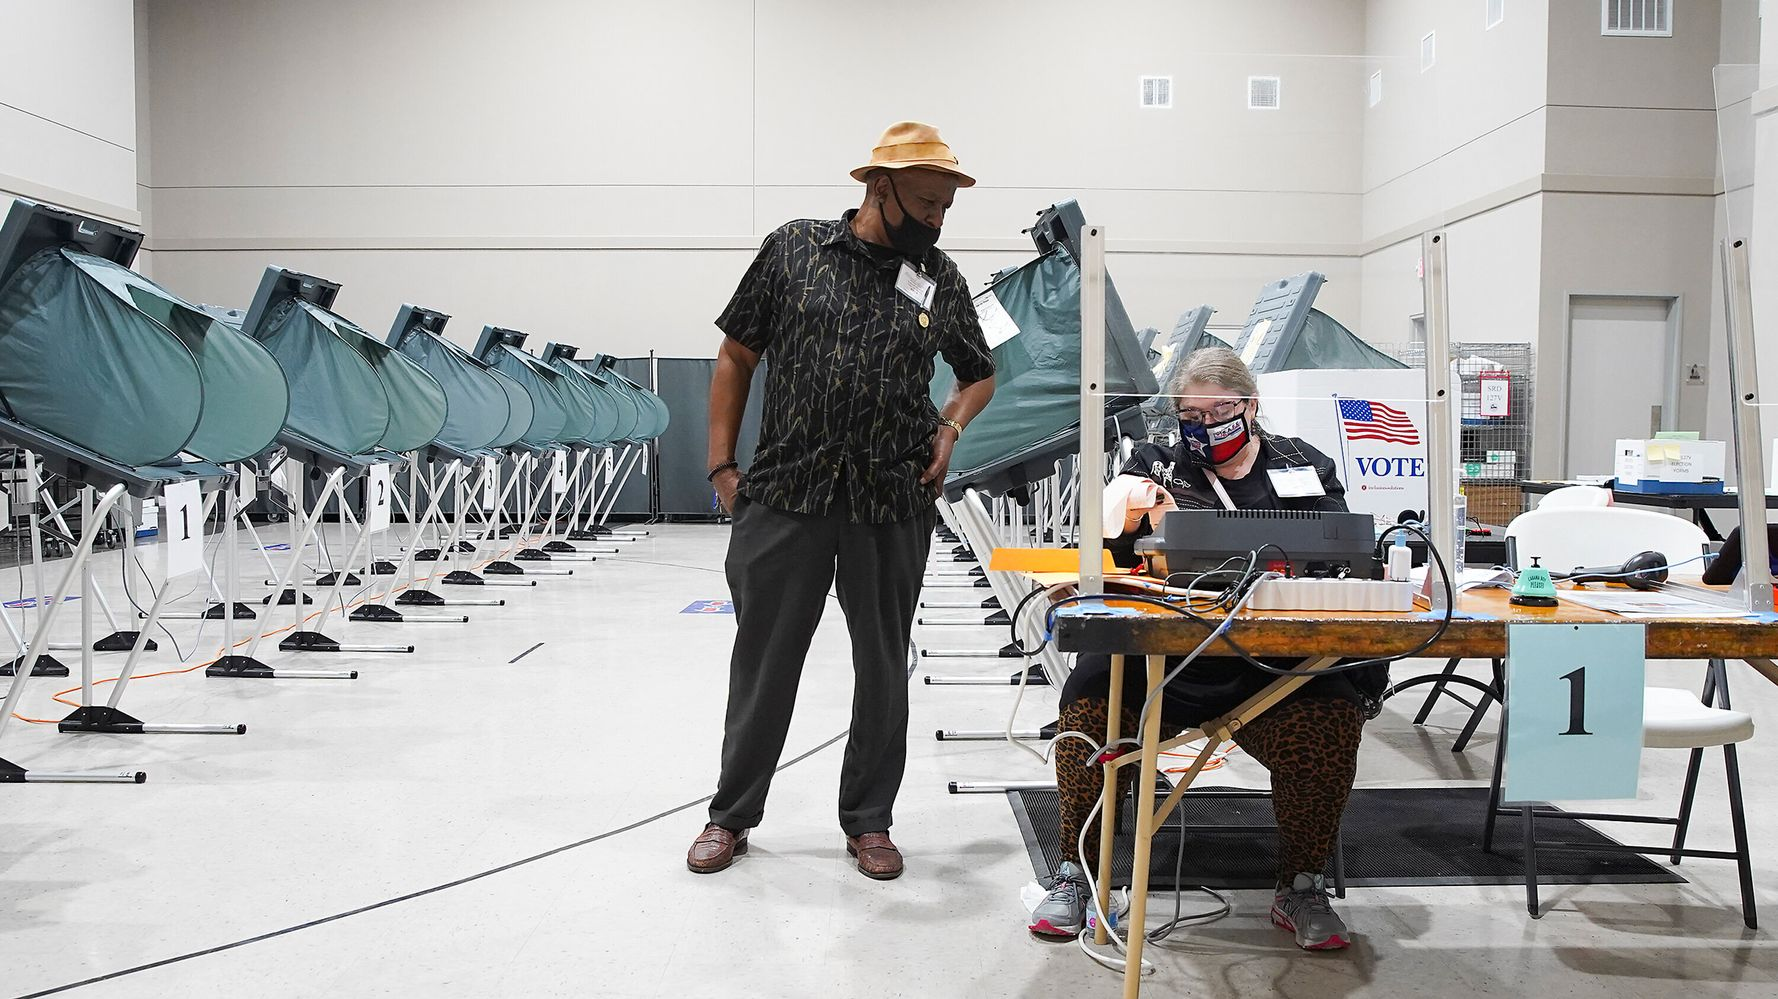 COVID-19 Surge Ahead Of Election Day Creates Concerns For Polling Places